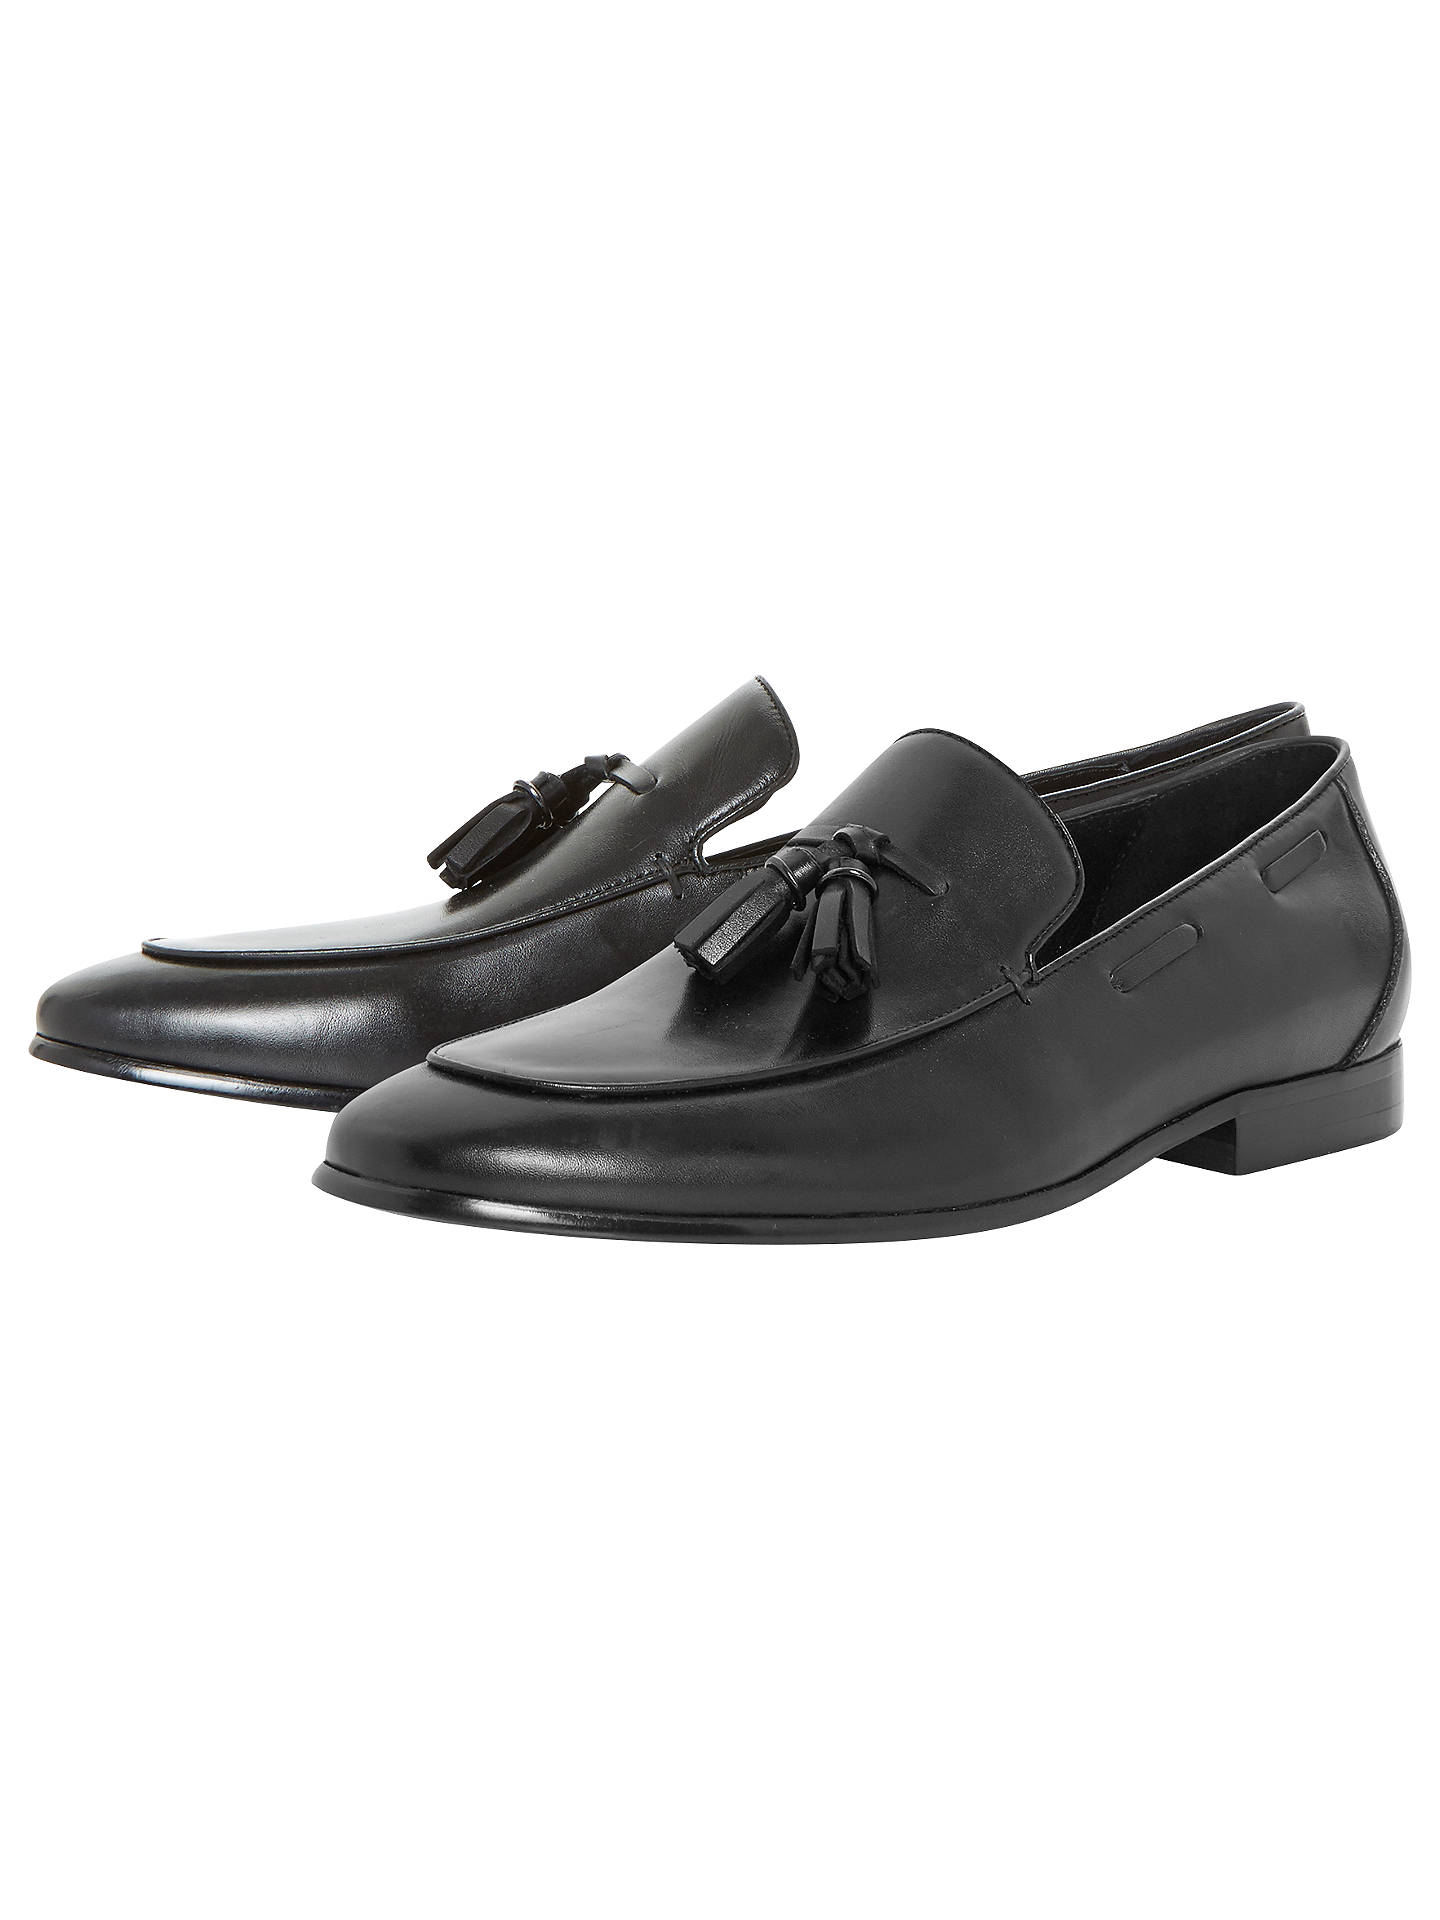 BuyDune Preacher Double Tassel Loafer Shoes, Black, 7 Online at johnlewis.com